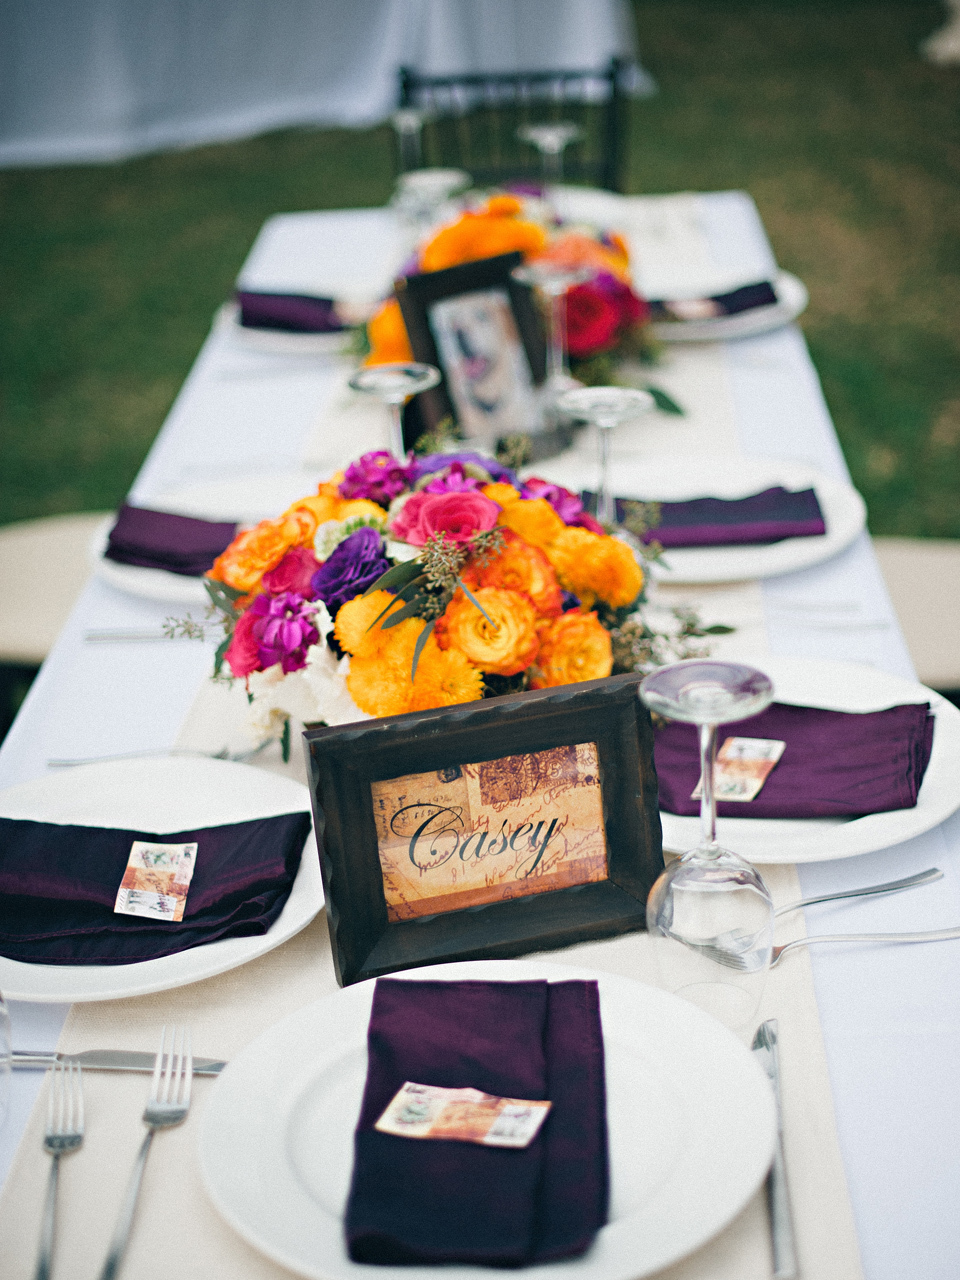 Reception, Flowers & Decor, Destinations, Registry, pink, purple, Place Settings, Flowers, Table, Destination, Colorful, Beige, Napkins, Tablescape, Plates, Film, Marigold, Décor, Sara jeremiah